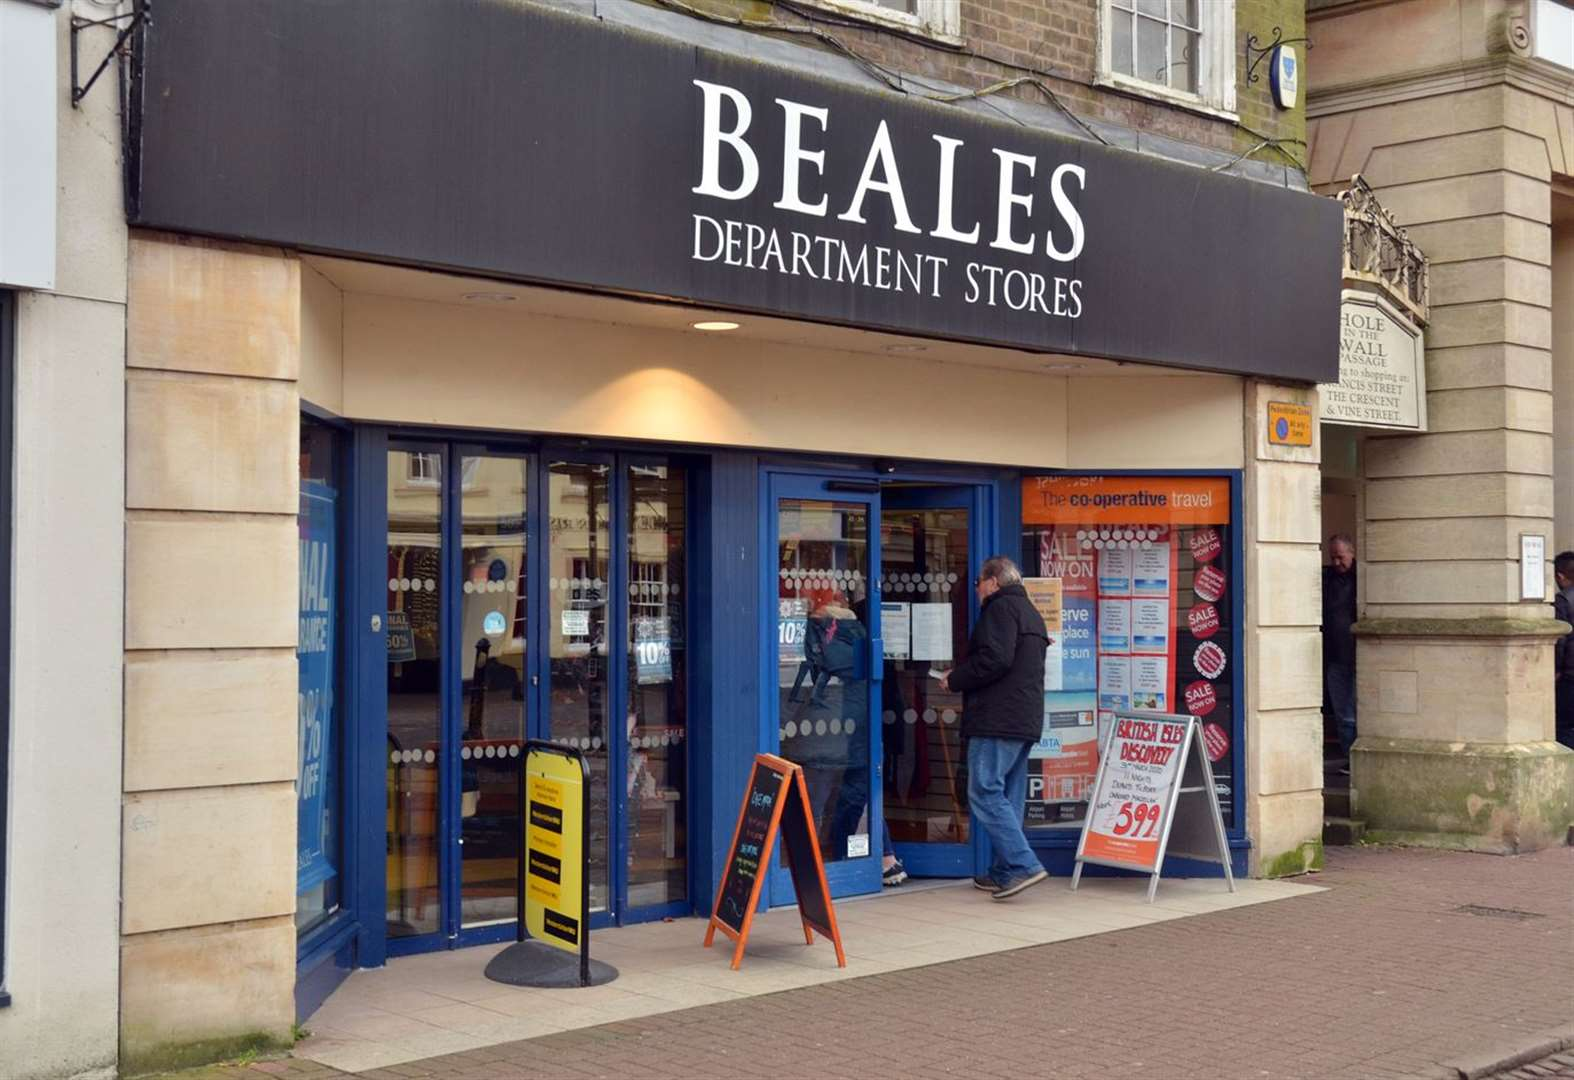 Future unclear for Beales